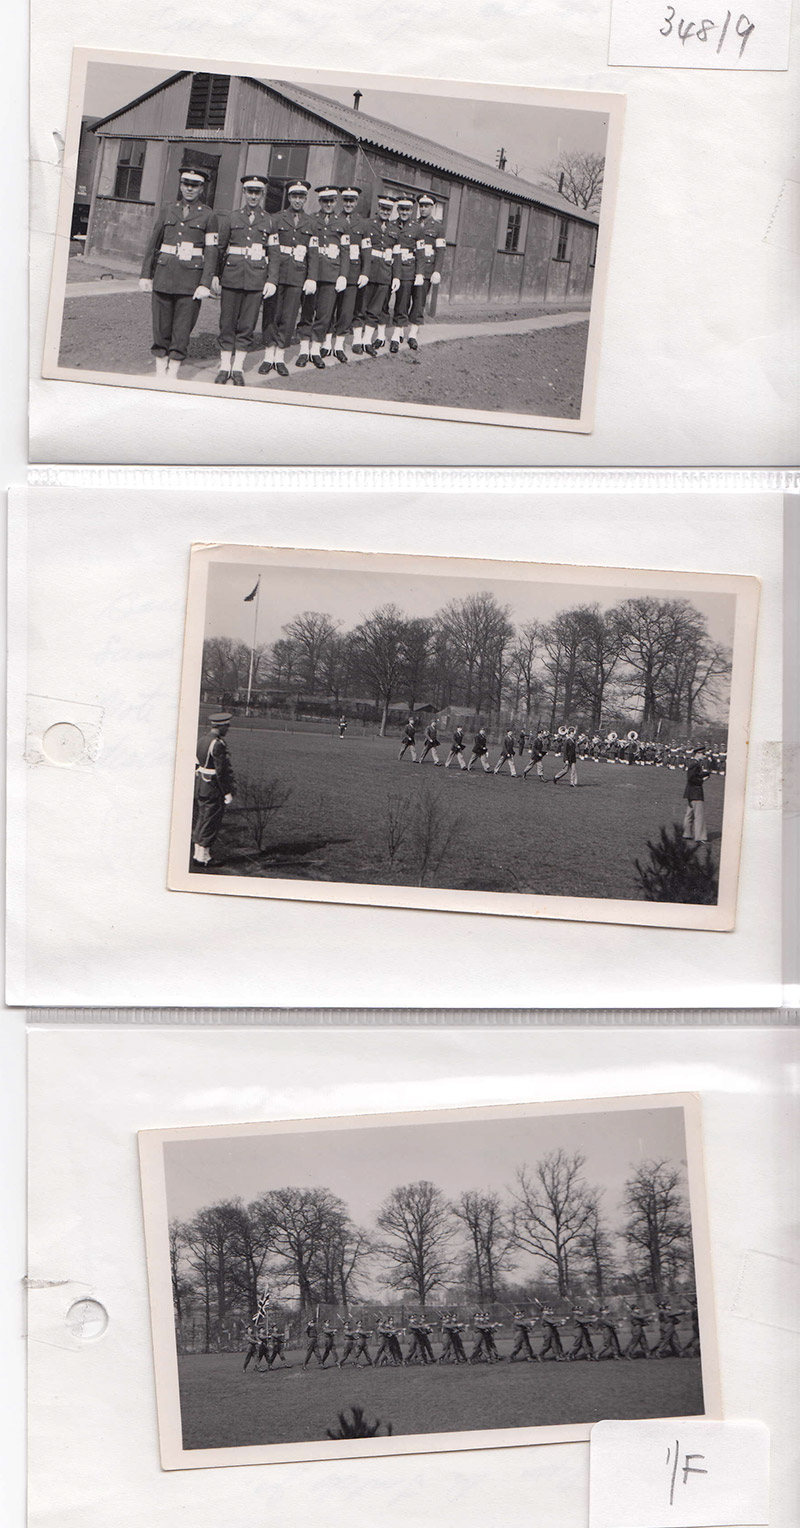 USAF troops outside Bushy Park barracks